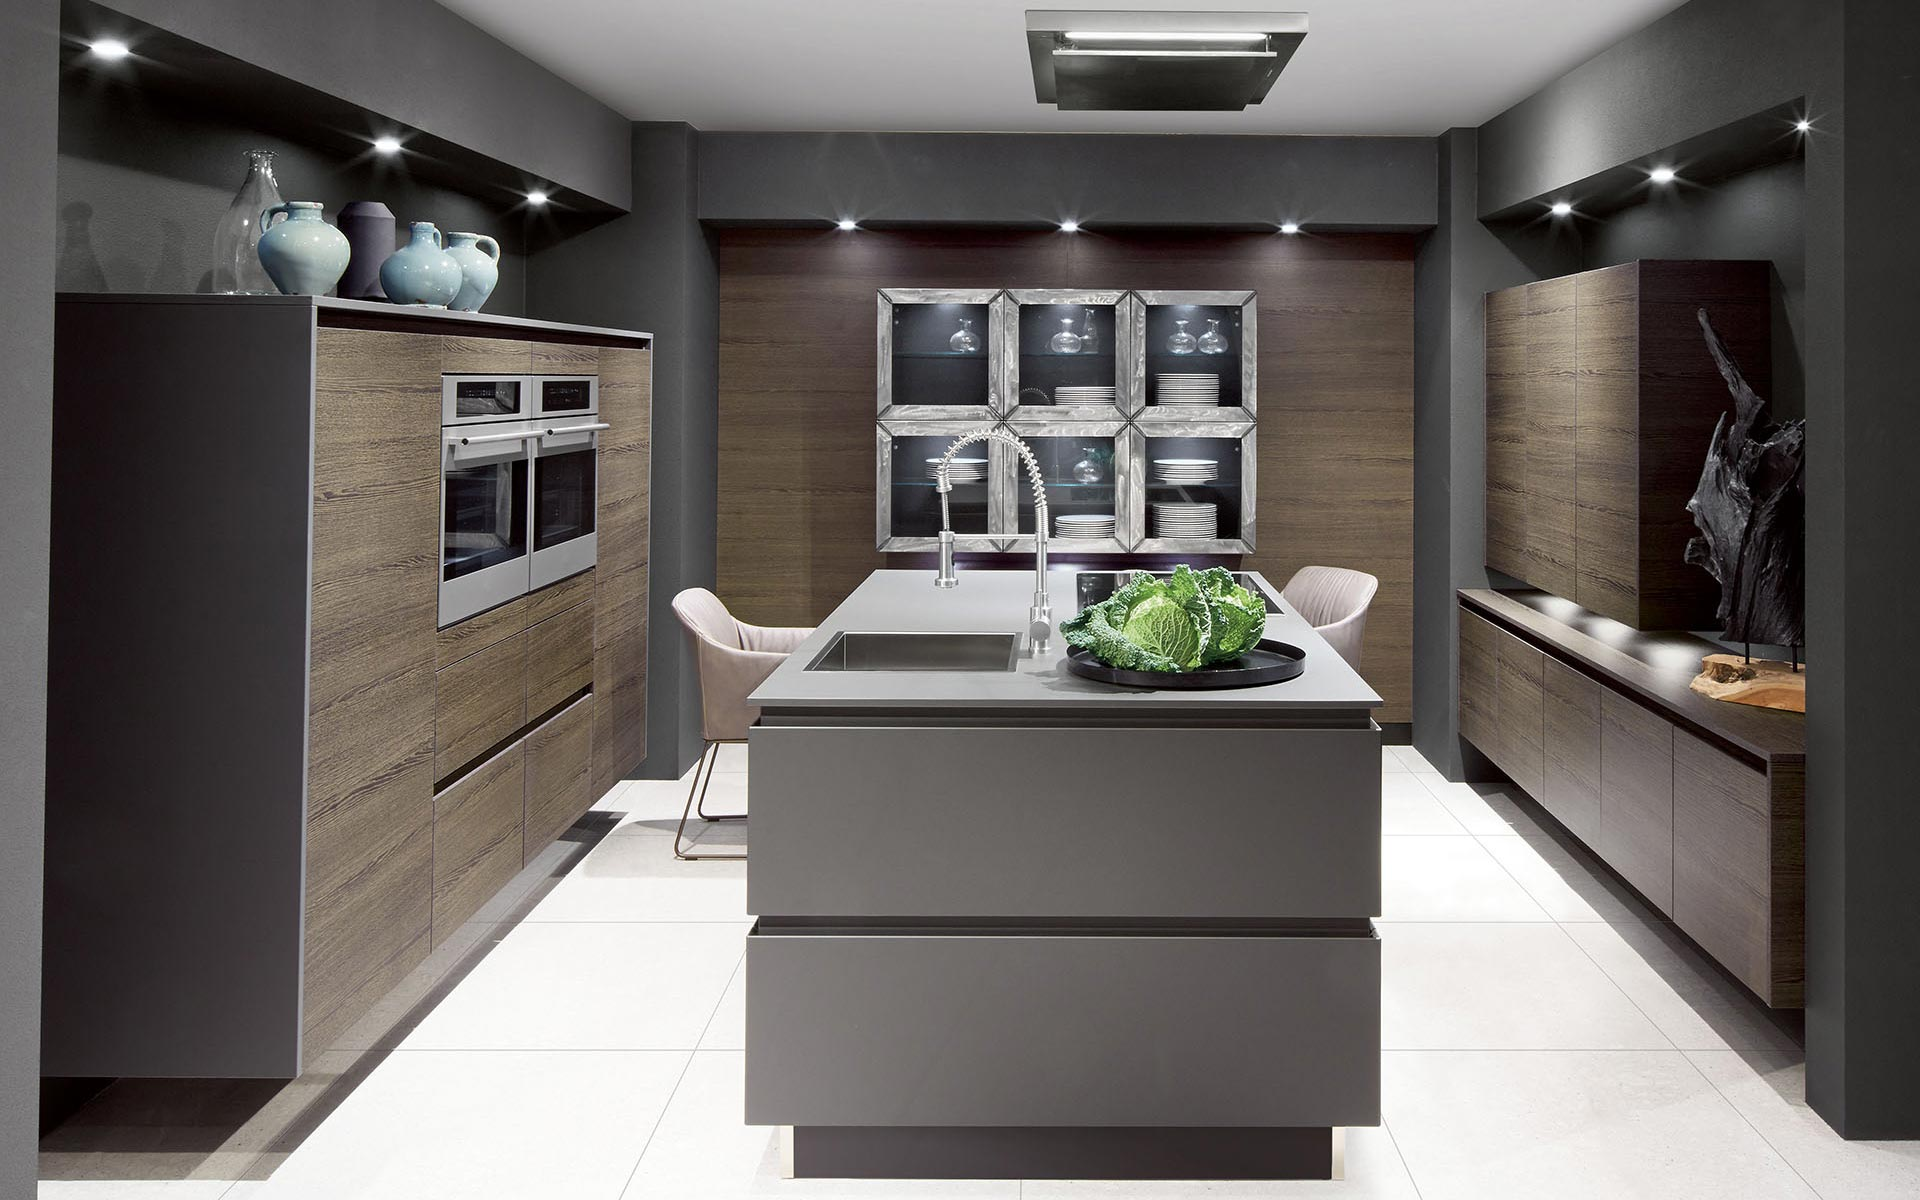 Toronto: Kitchens from Germany, Europe. Calm H Dunkel • Extrem Graphit